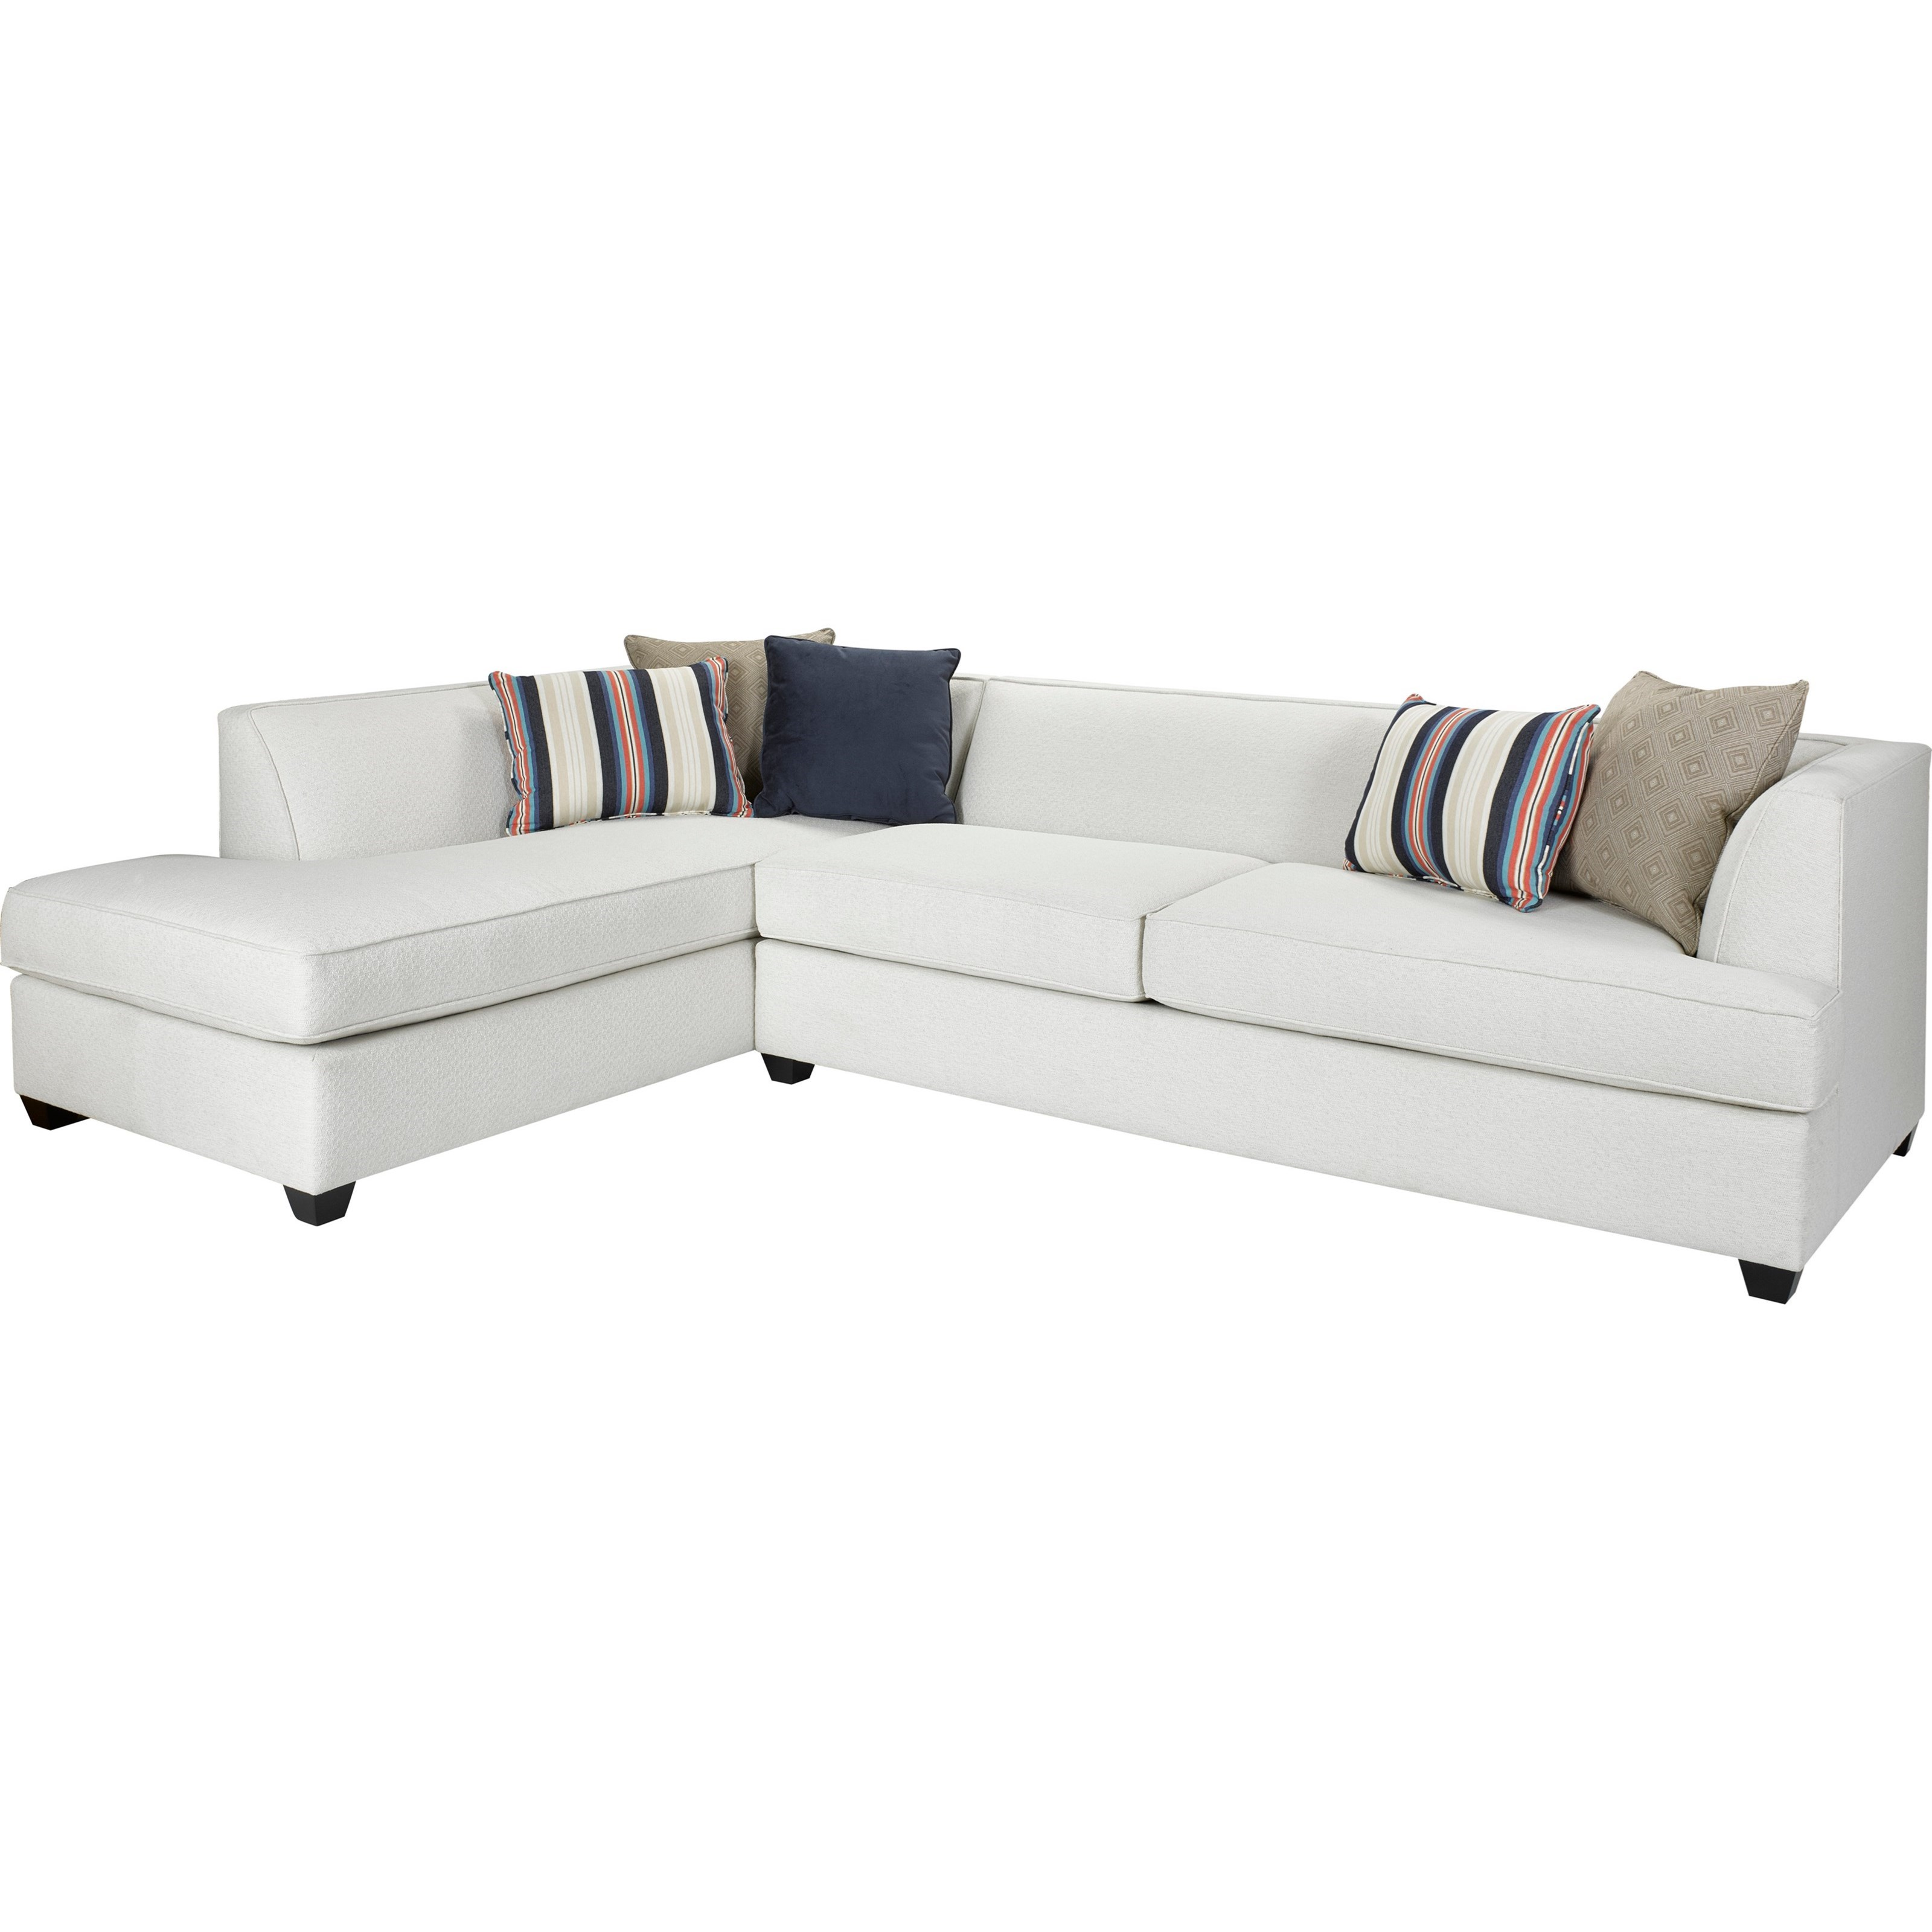 Broyhill Furniture Farida 2 Piece Sectional Sofa with LAF Chaise ...